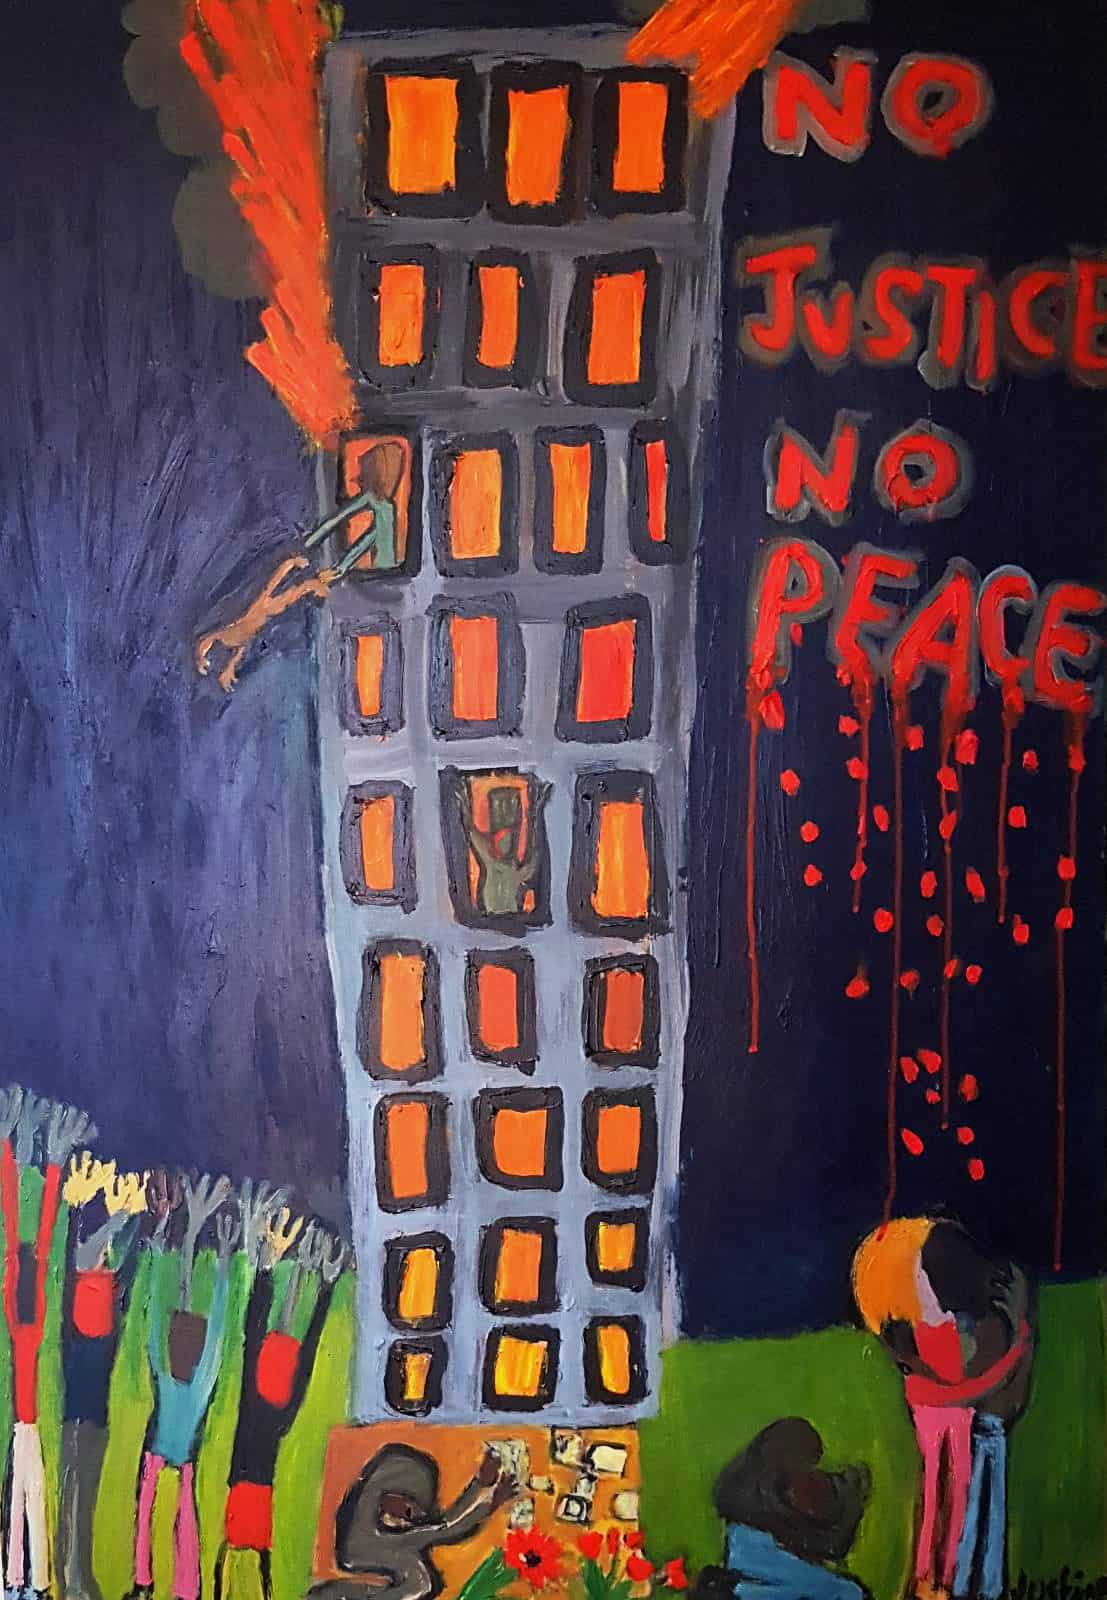 Painting by Justine Roland-Cal - Justice for Grenfell